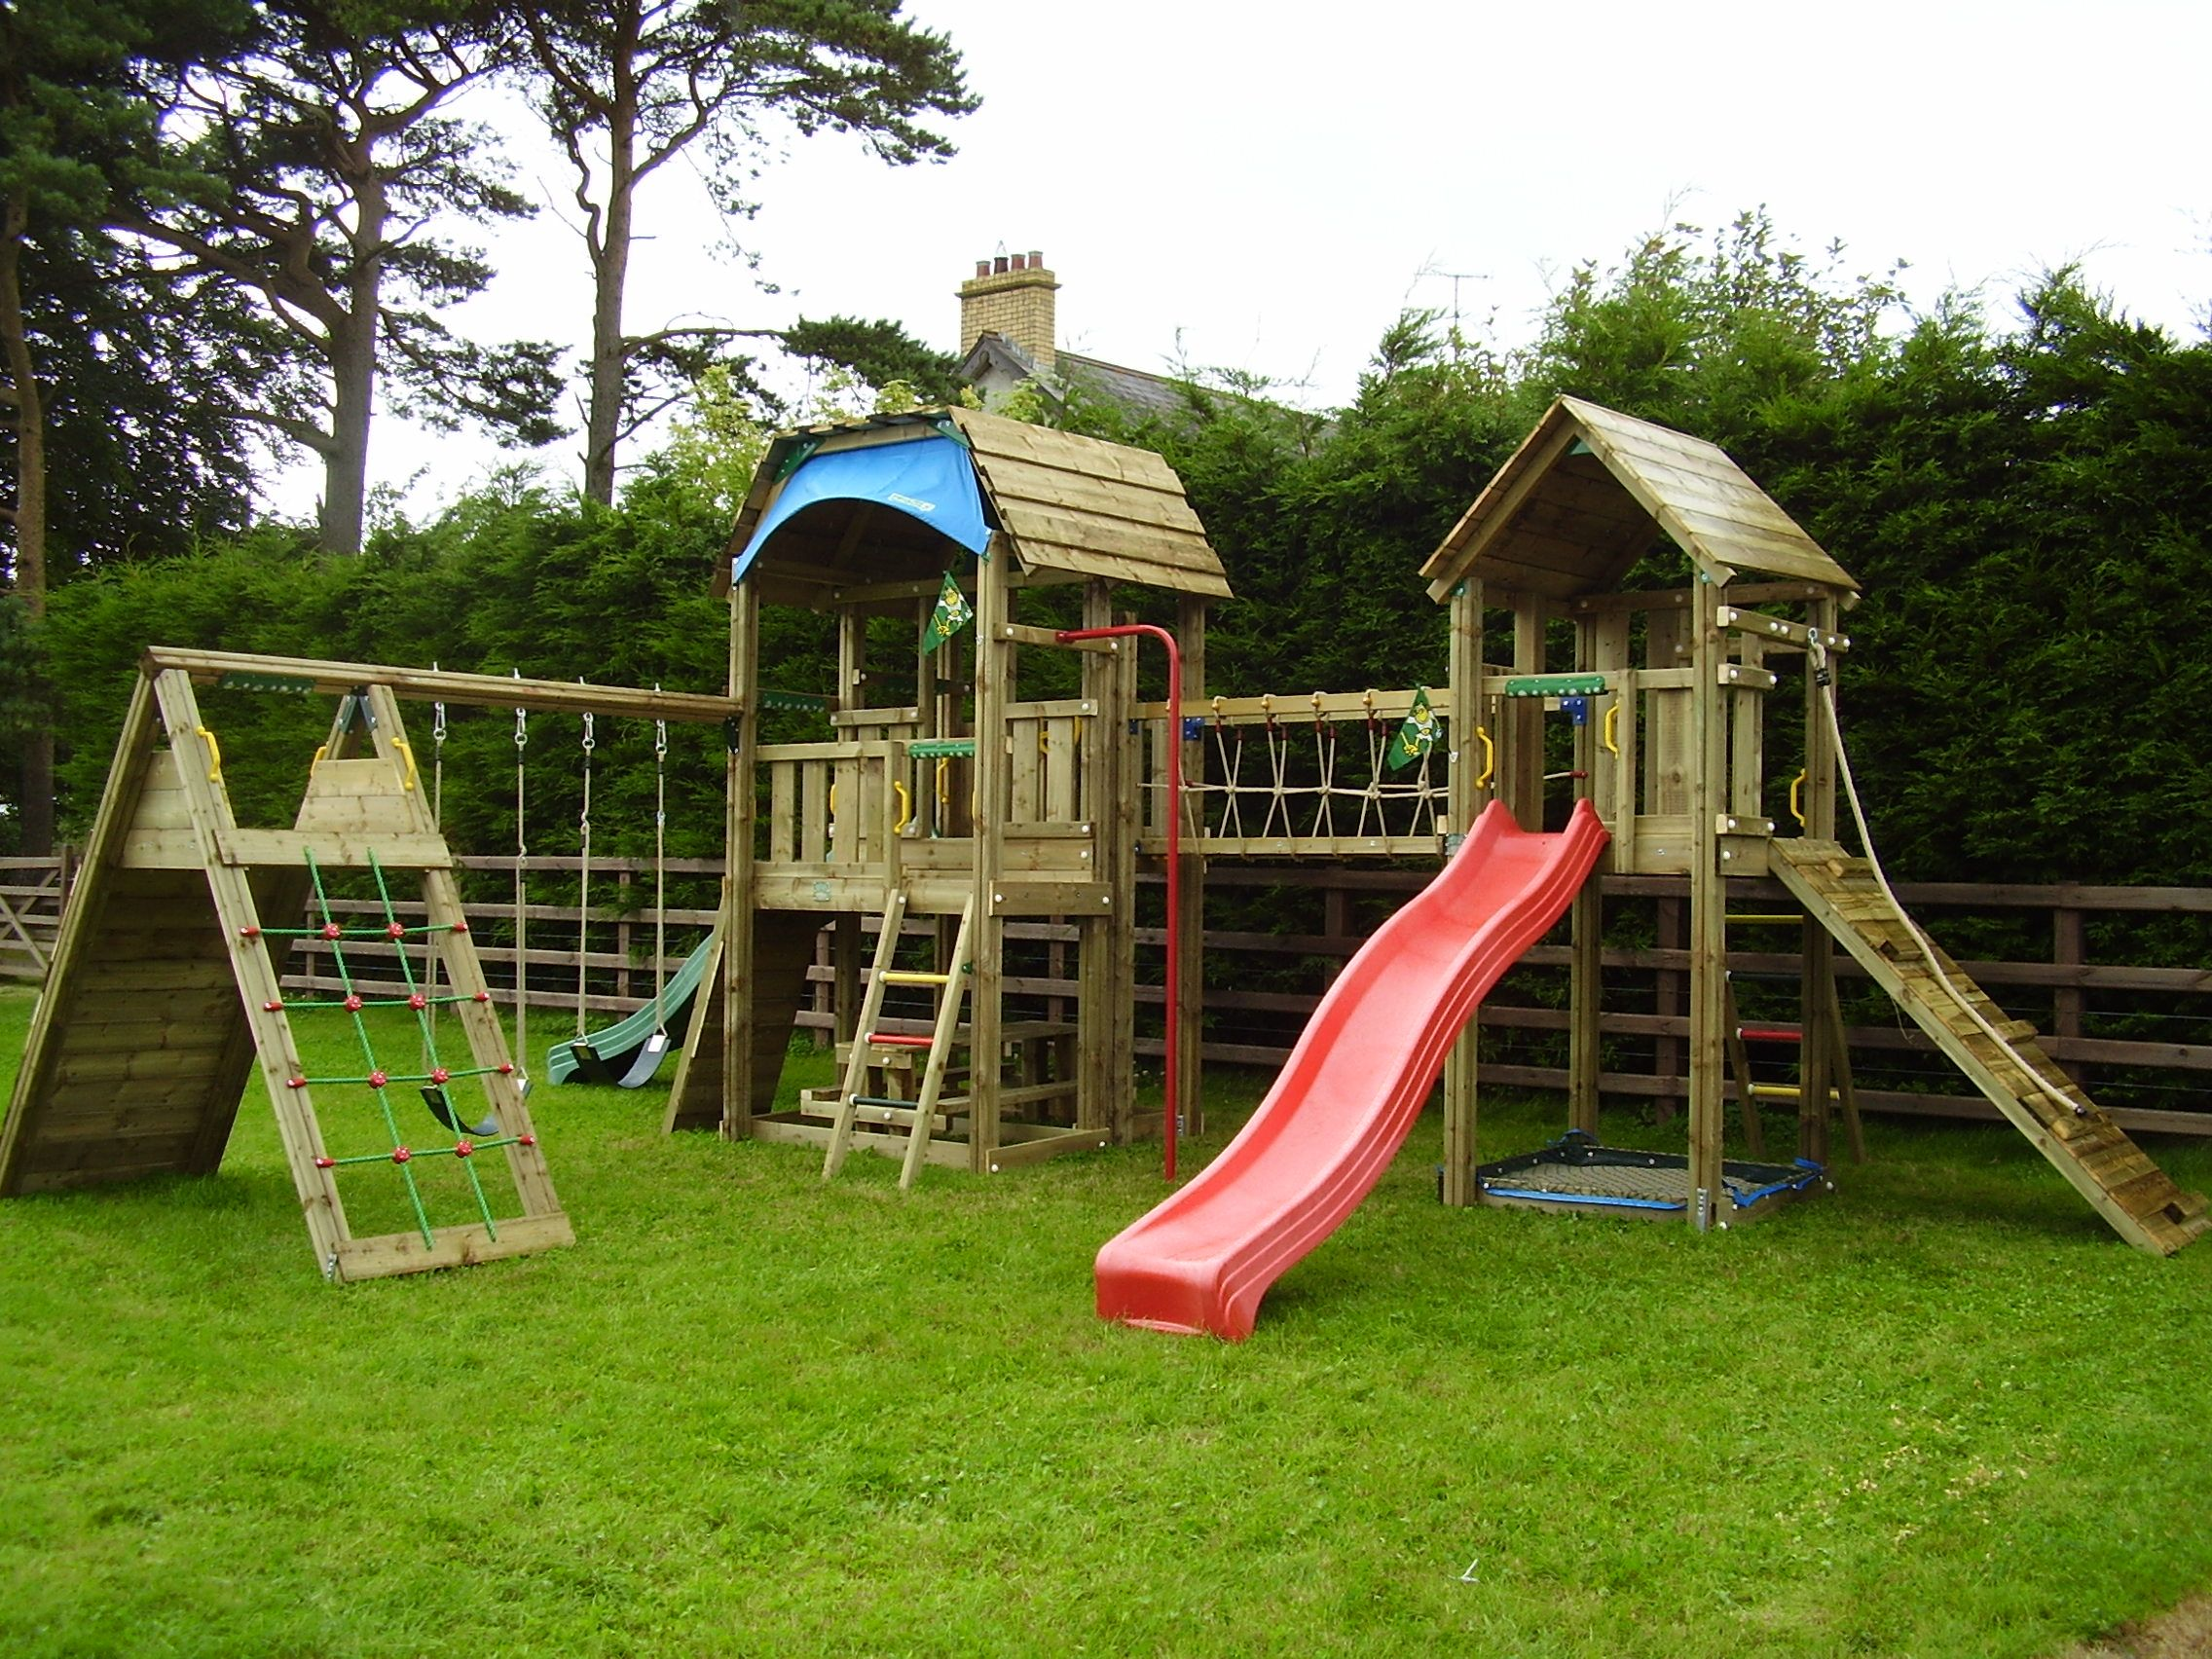 Jungle Gym Built By Neil Henry For Woodstoc Northern Ireland.